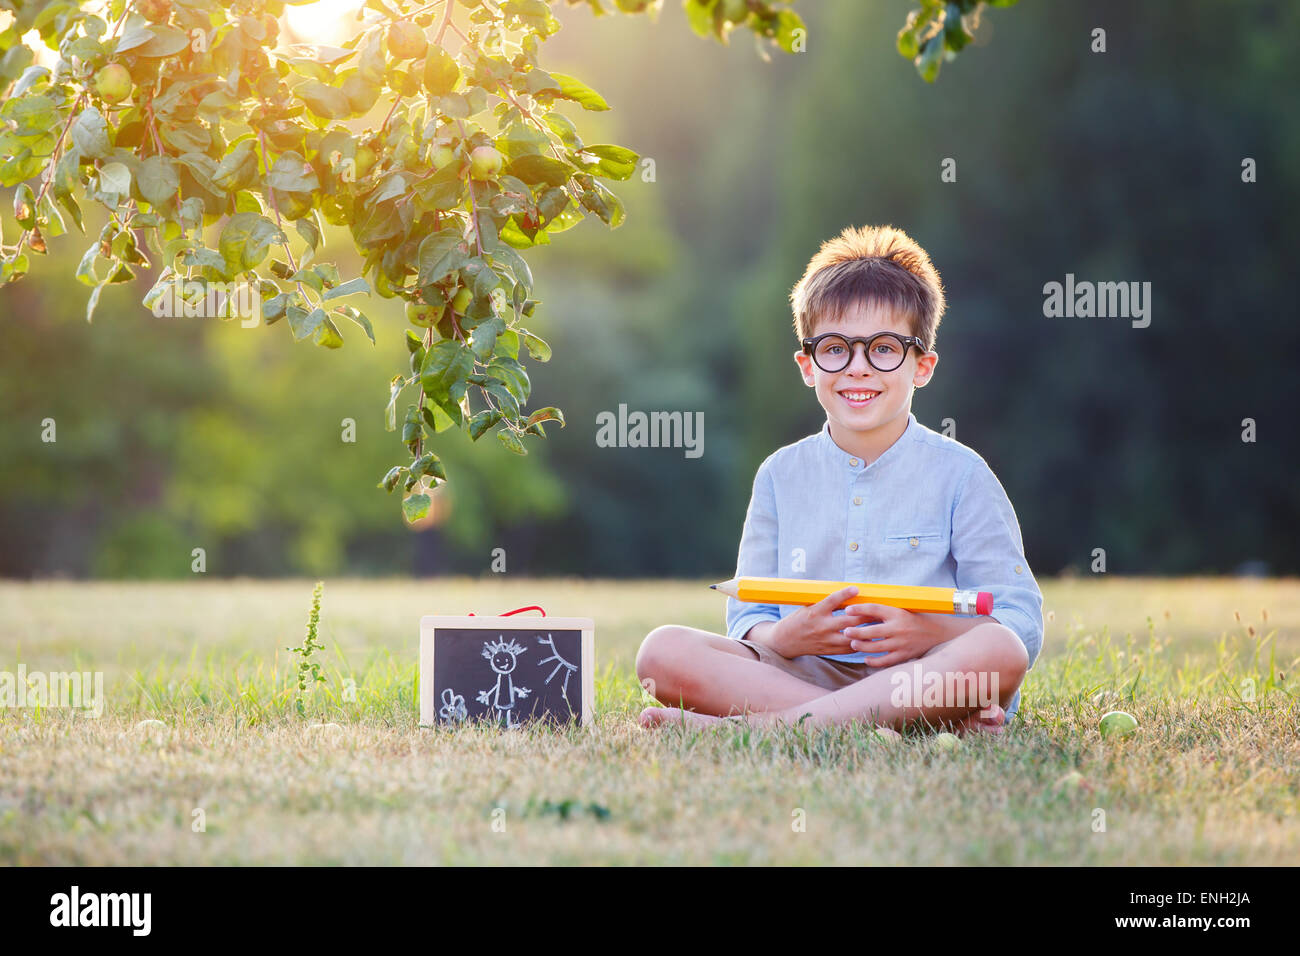 Cute little schoolboy feeling extremely excited about going back to school - Stock Image